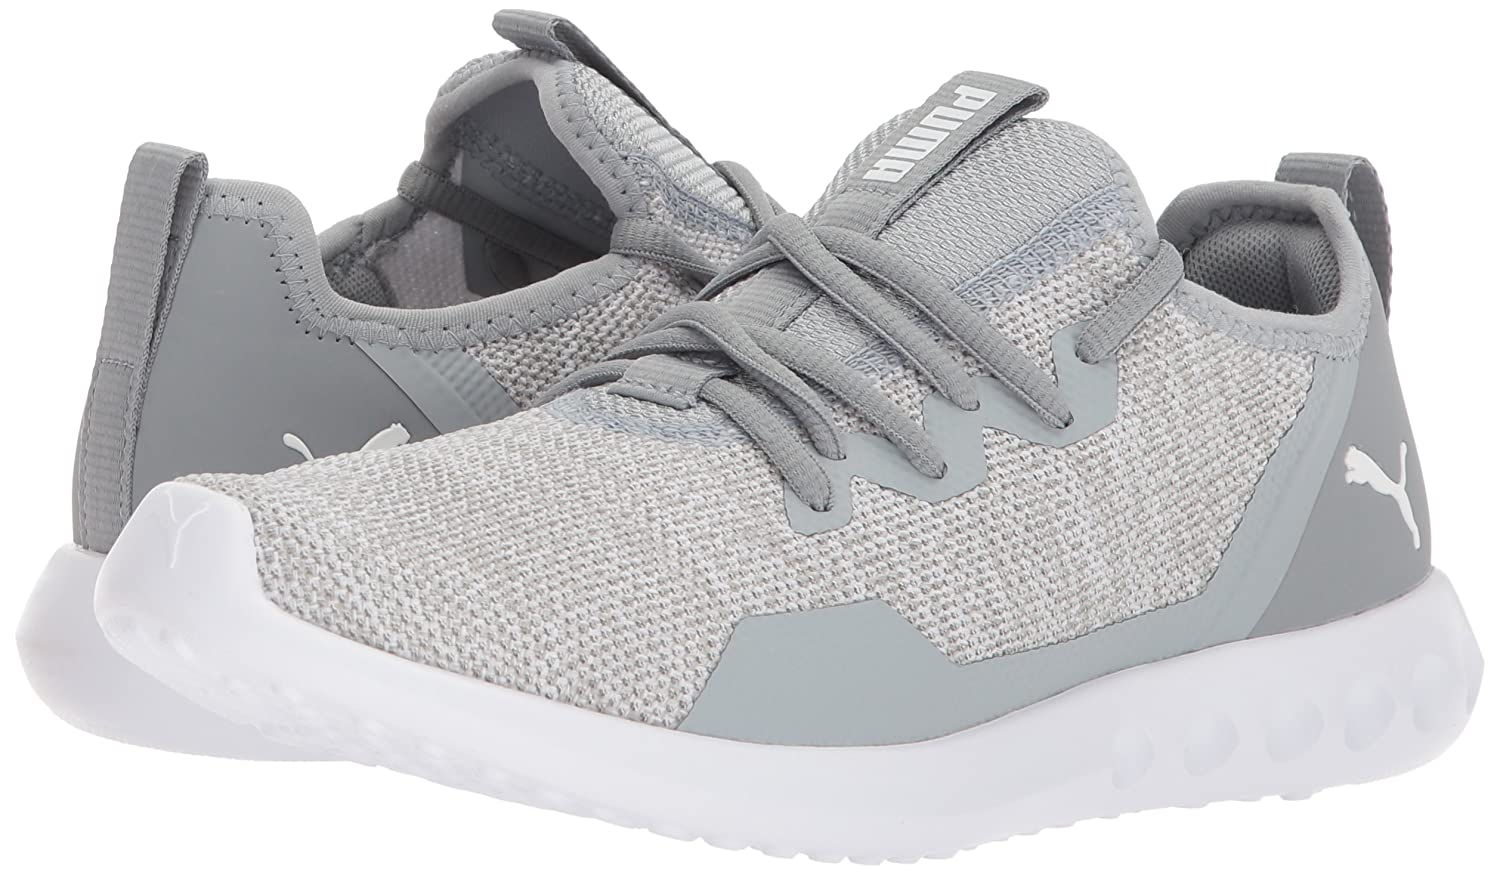 PUMA Women's Carson 2 X Knit Wn US|Quarry-puma Sneaker B071X3FVTC 10 M US|Quarry-puma Wn White 9c2577